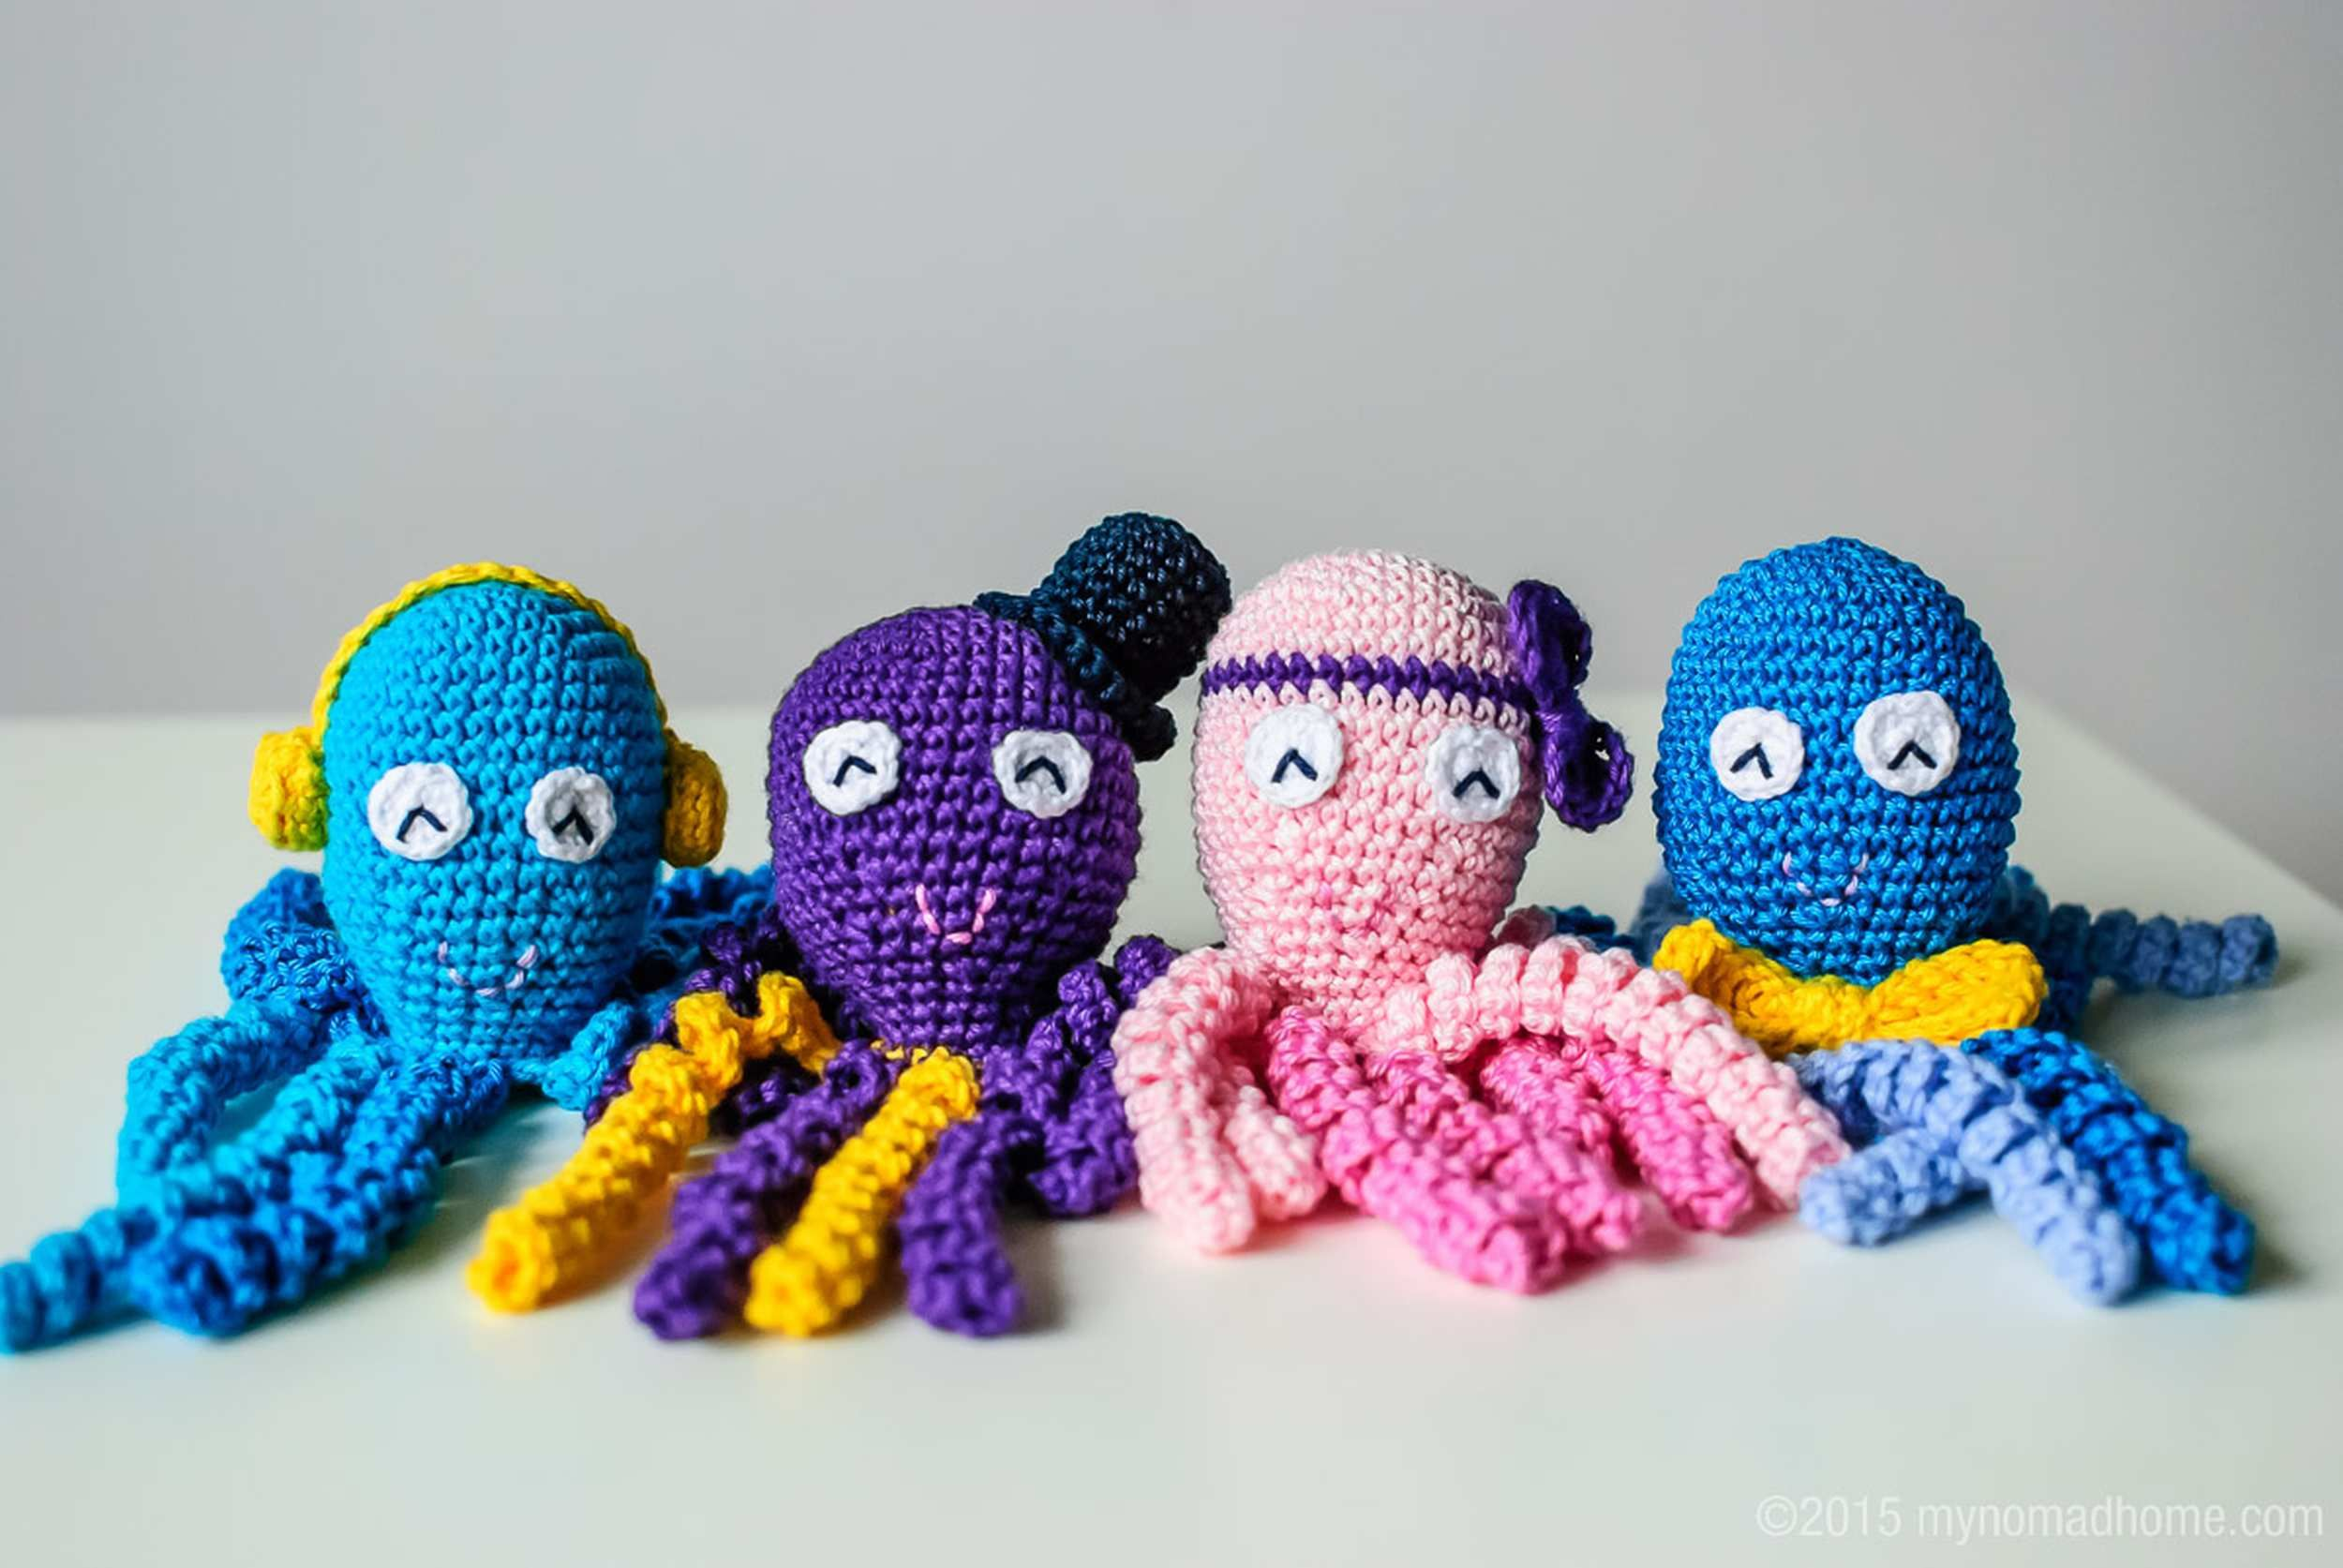 Easy Amigurumi Octopus : How to make amigurumi adorabilis octopus tentacles youtube